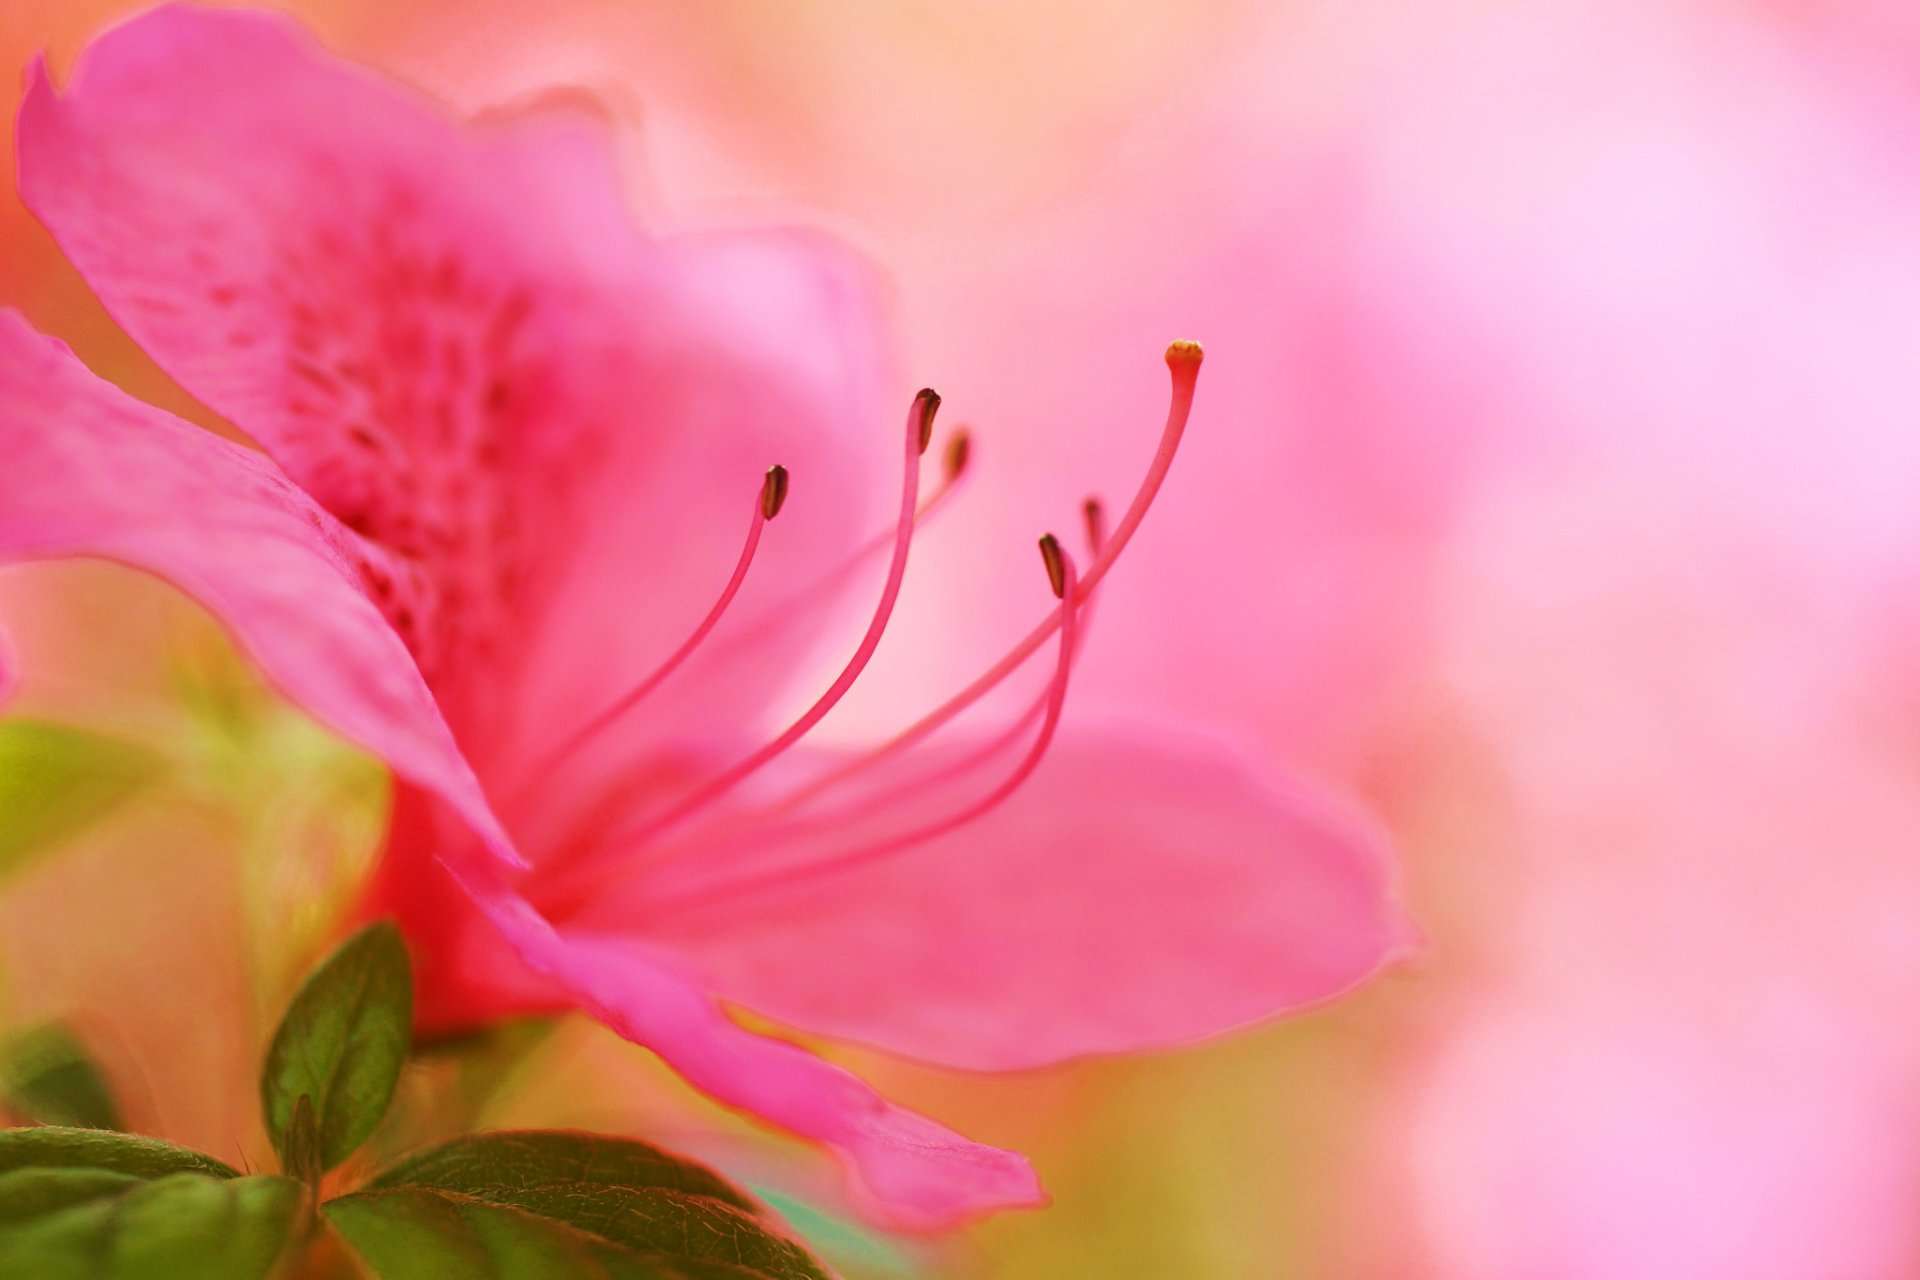 Earth - Azalea  Nature Flower Pink Flower Macro Wallpaper